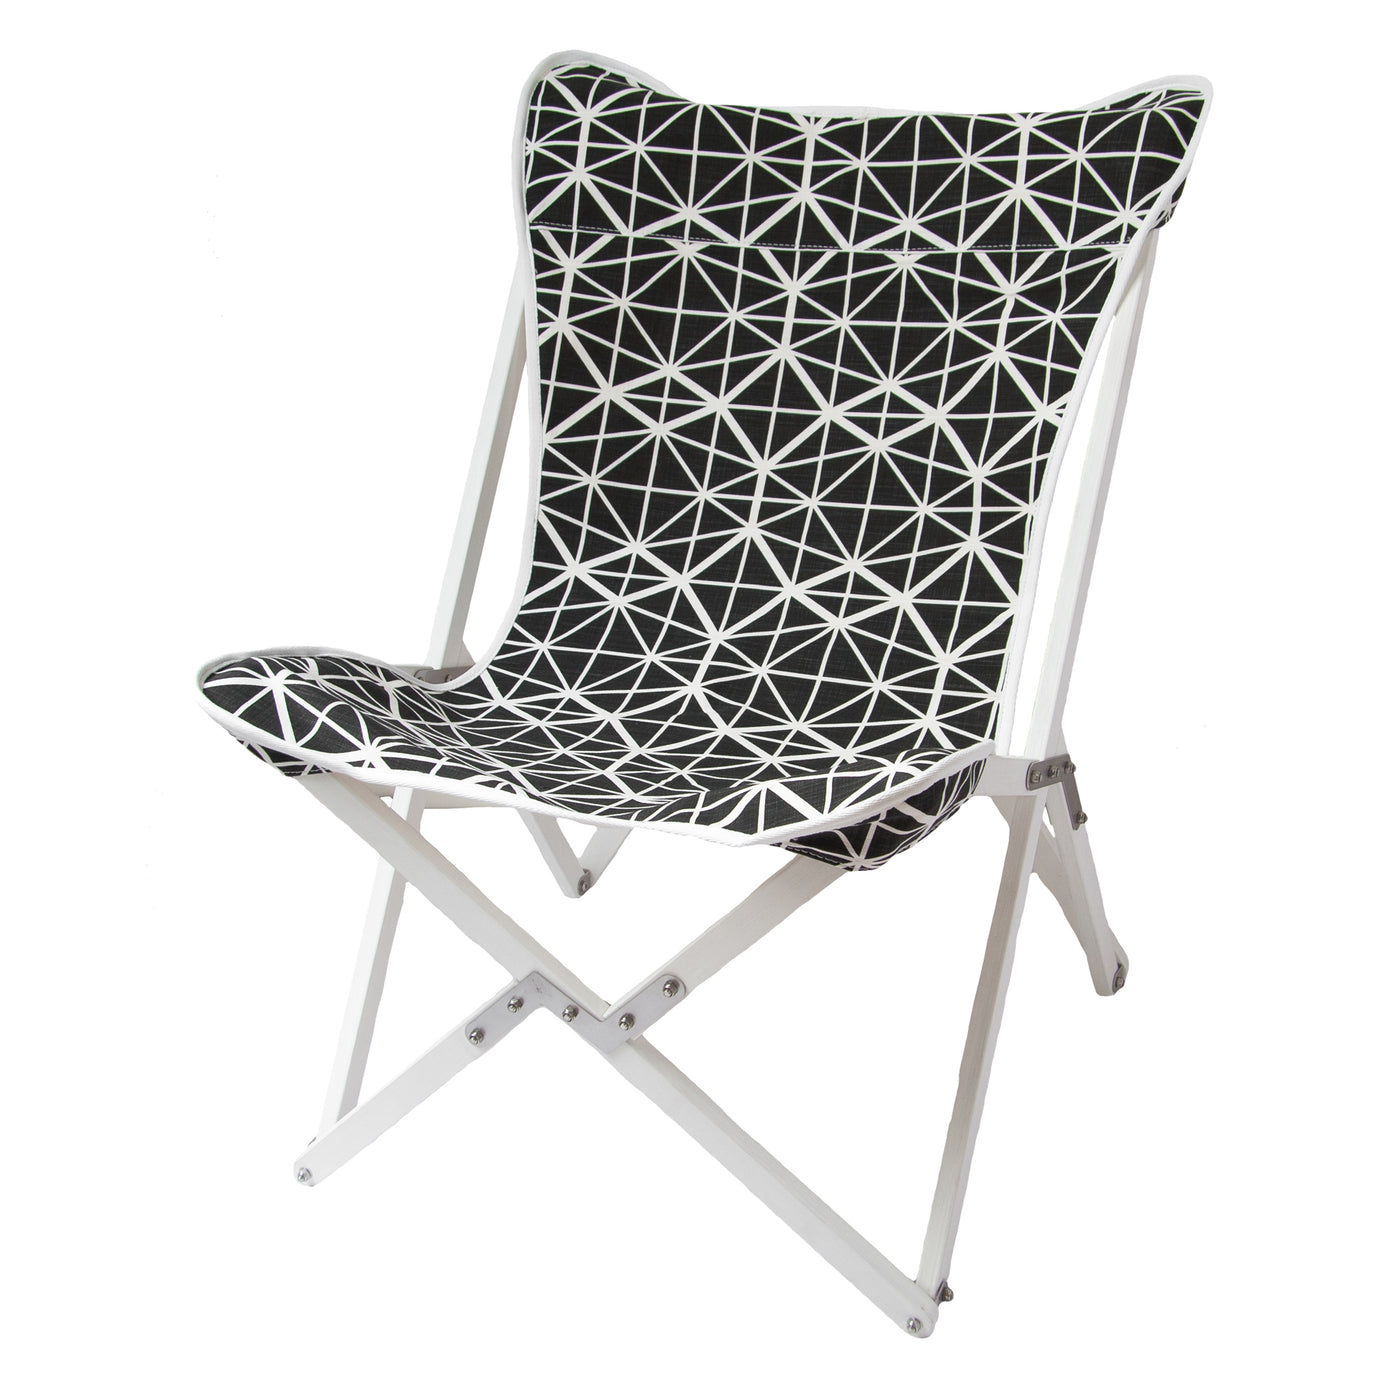 Tripolina Chair (facet) by Safari Fusion www.safarifusion.com.au